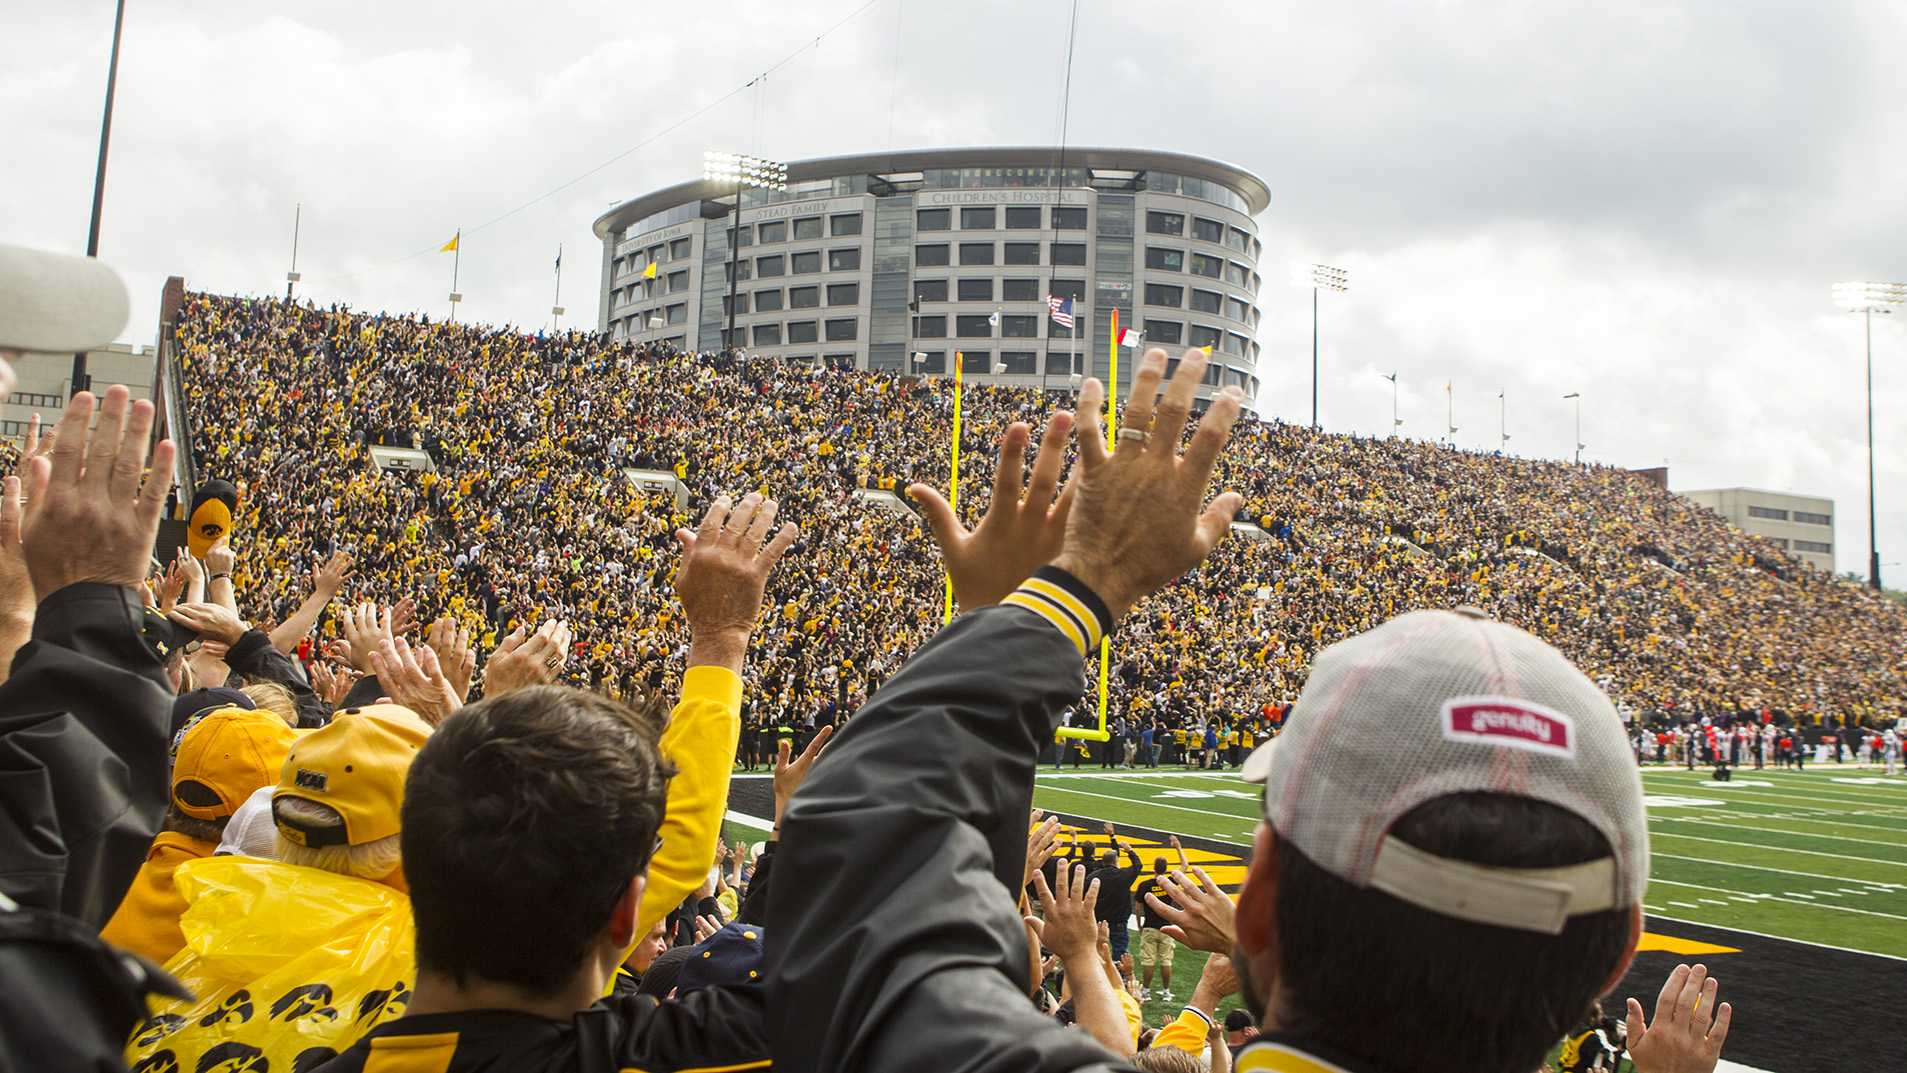 Iowa fans wave to children in the Stead Family Children's Hospital after the first quarter during an NCAA football game between Iowa and Illinois in Kinnick Stadium on Saturday, Oct. 7, 2017.  The Hawkeyes defeated the Fighting Illini, 45-16. (Joseph Cress/The Daily Iowan)